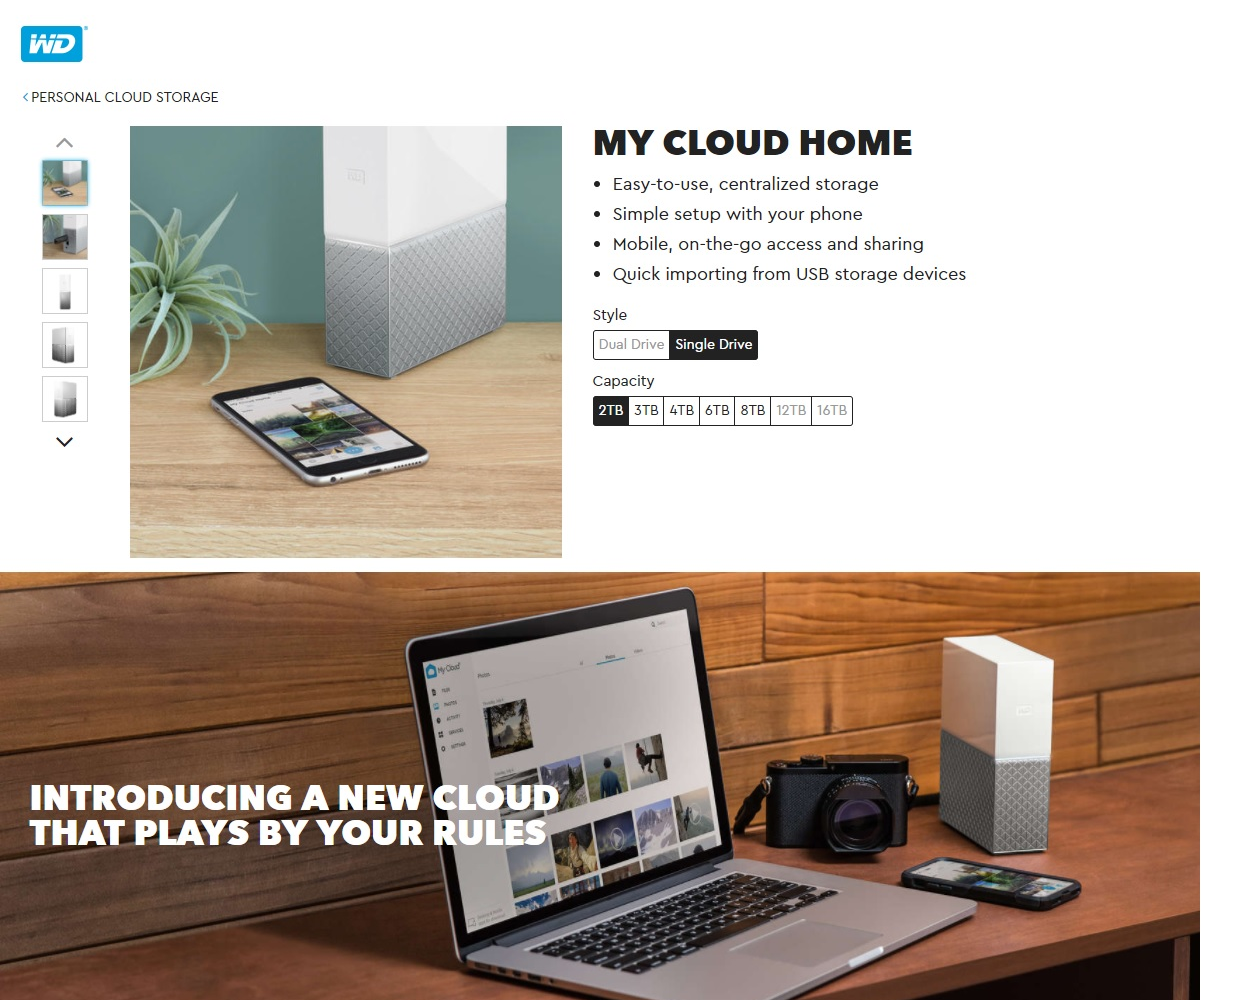 WD My Cloud Home Personal Cloud Storage Single Drive 8TB WDBVXC0080HWT-SESN  (Save everything at home, Access it anywhere)